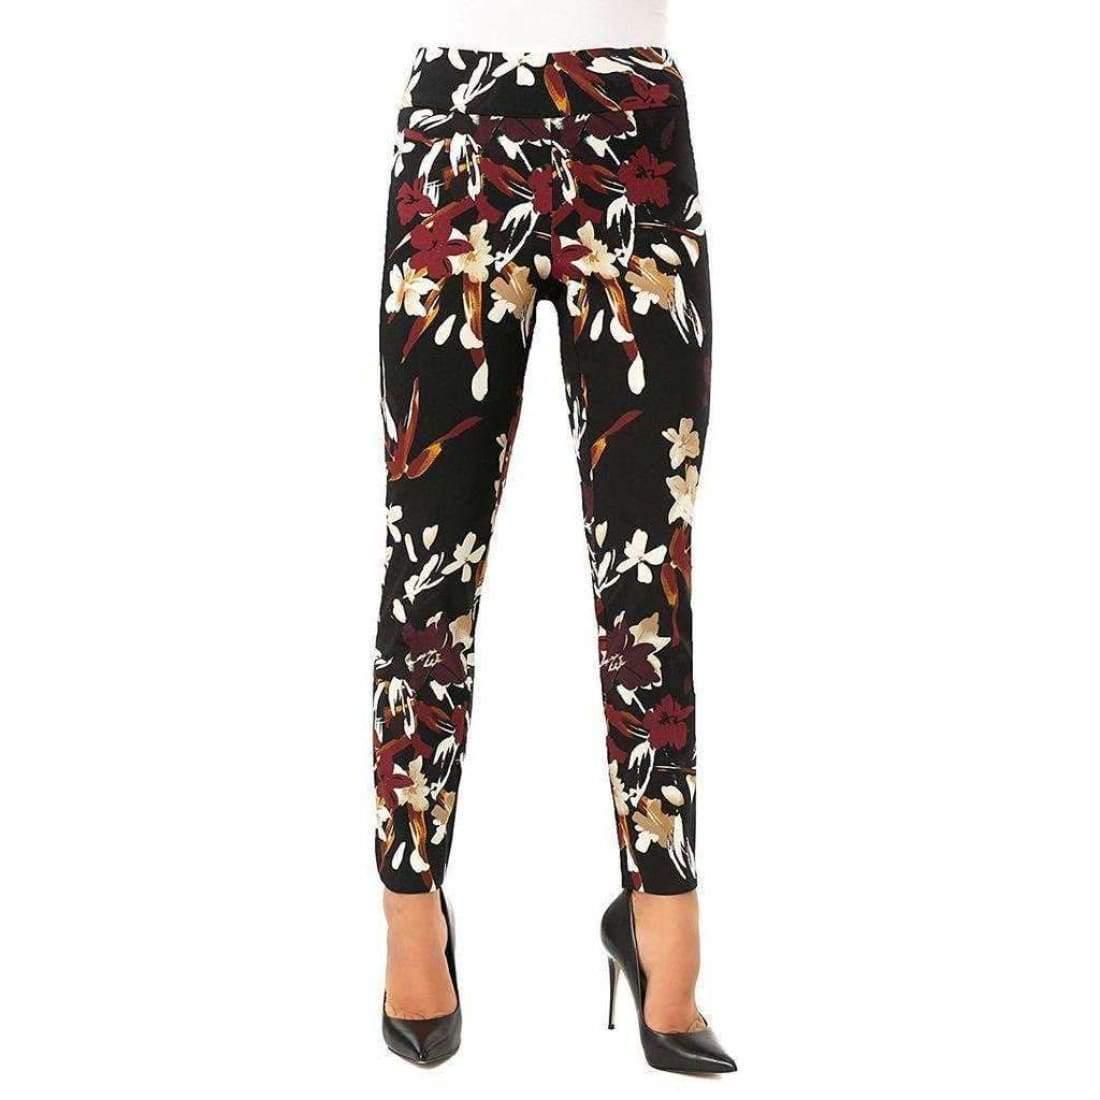 Up! Womens Petal Slit Ankle Pants Flatten And Flatter Style 66569 Techno Flora 8 Pants